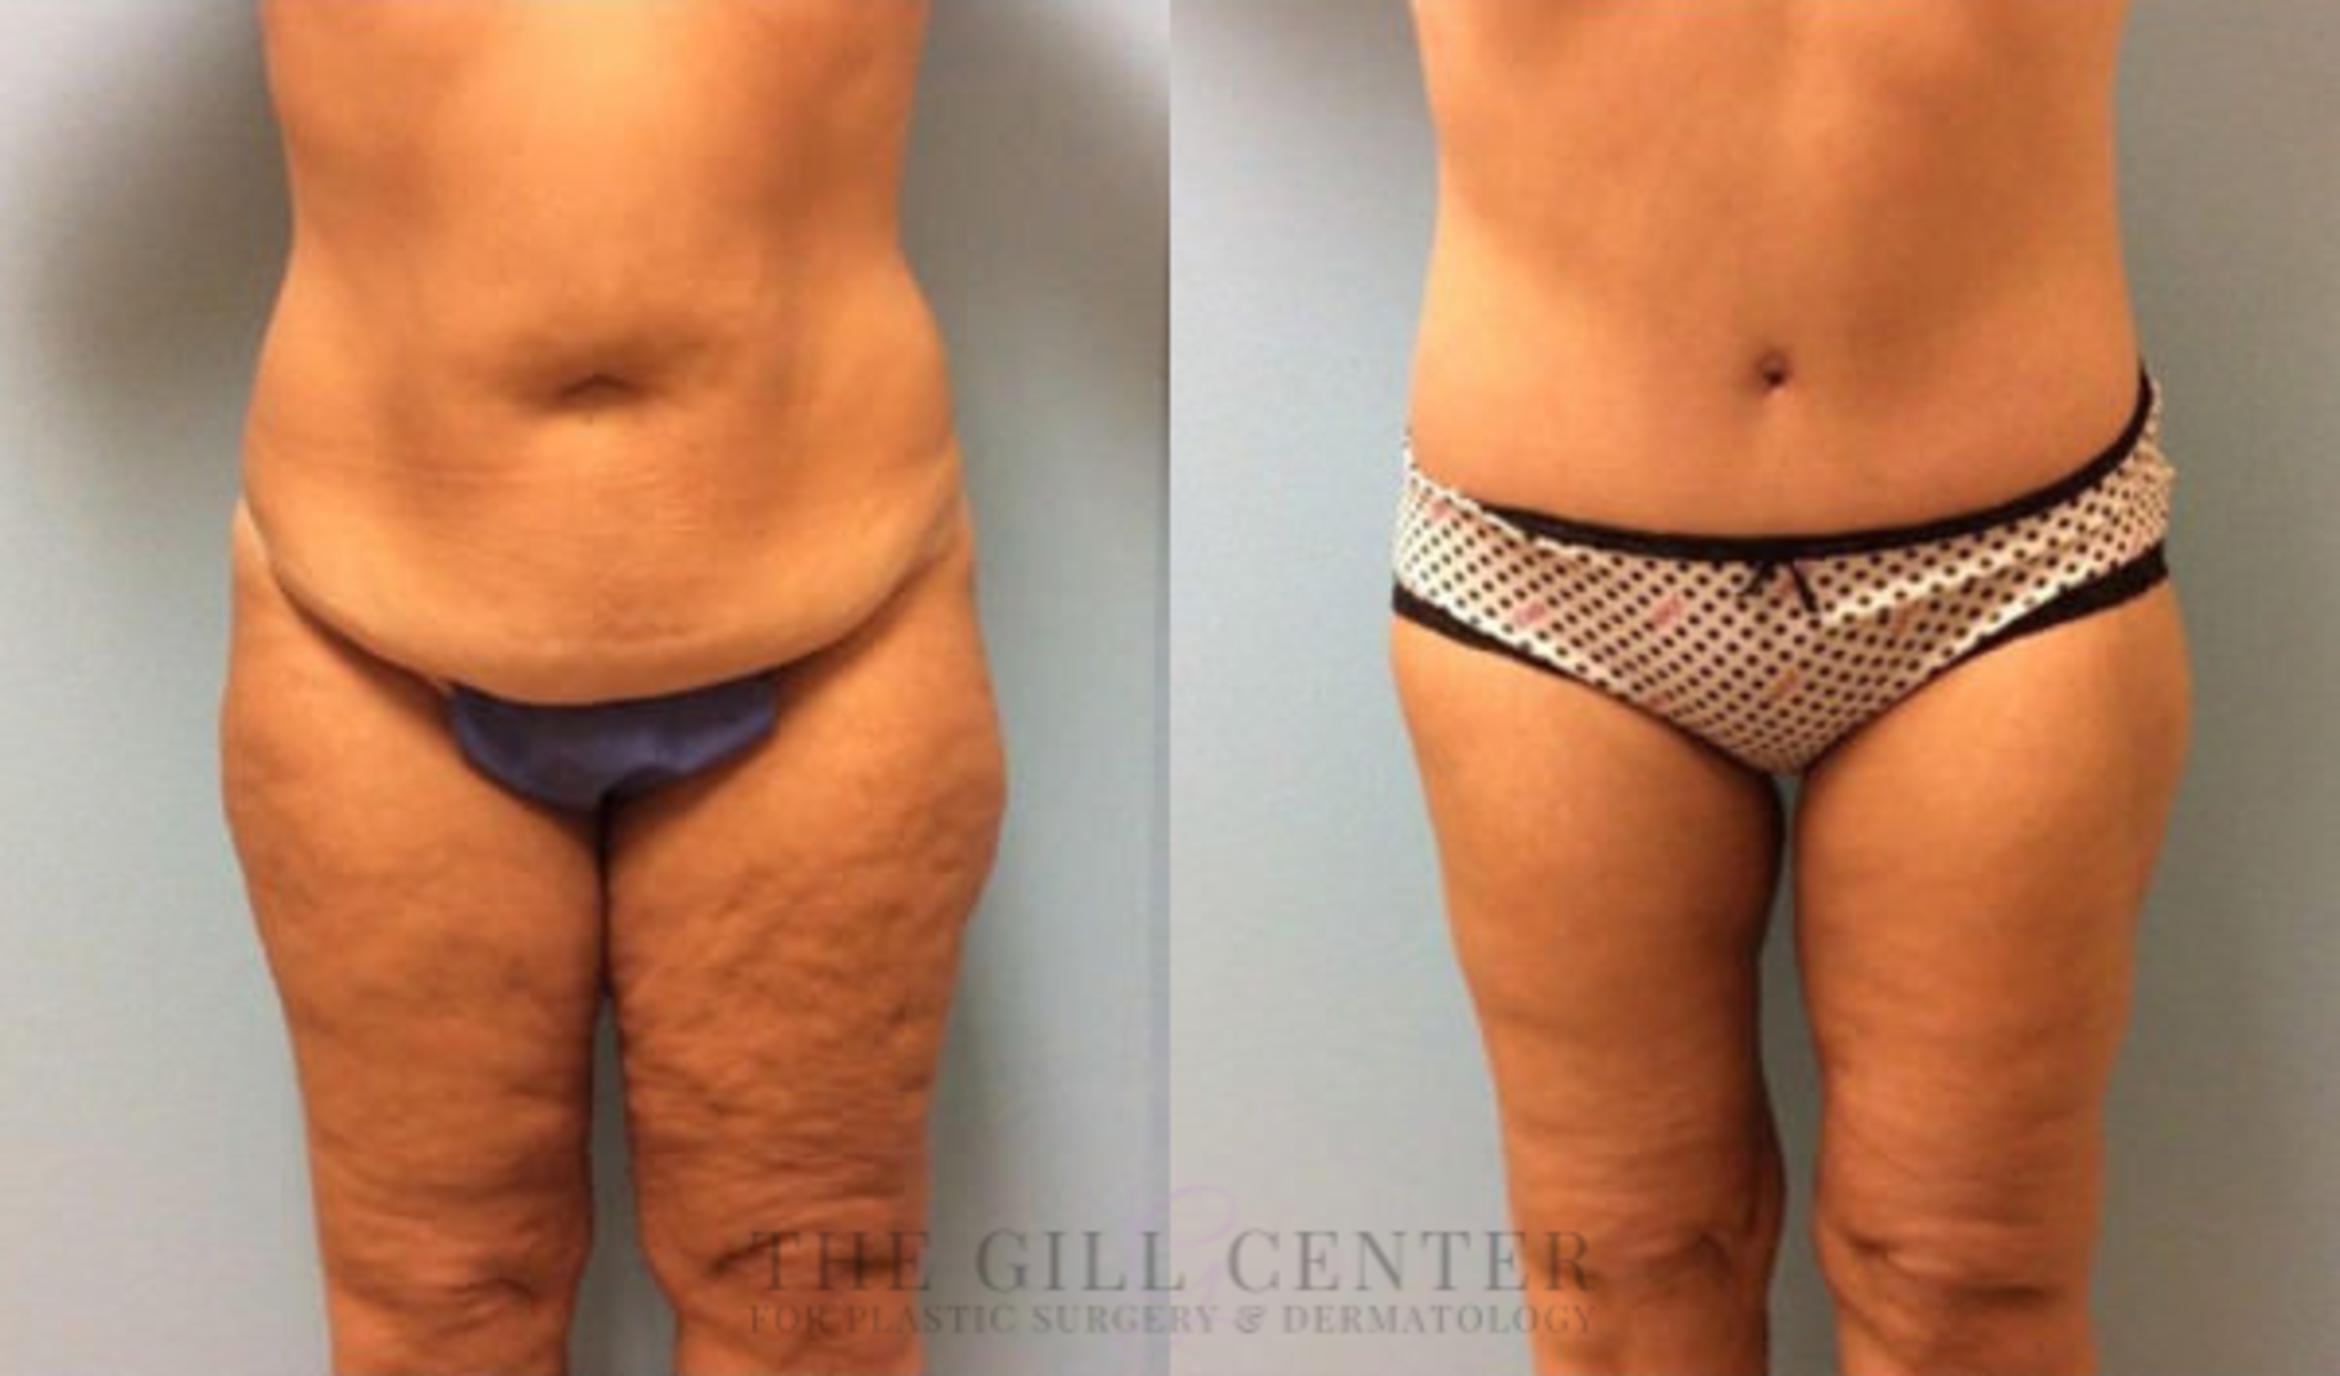 Thigh Lift Case 171 Before & After Front | Shenandoah, TX | The Gill Center for Plastic Surgery and Dermatology